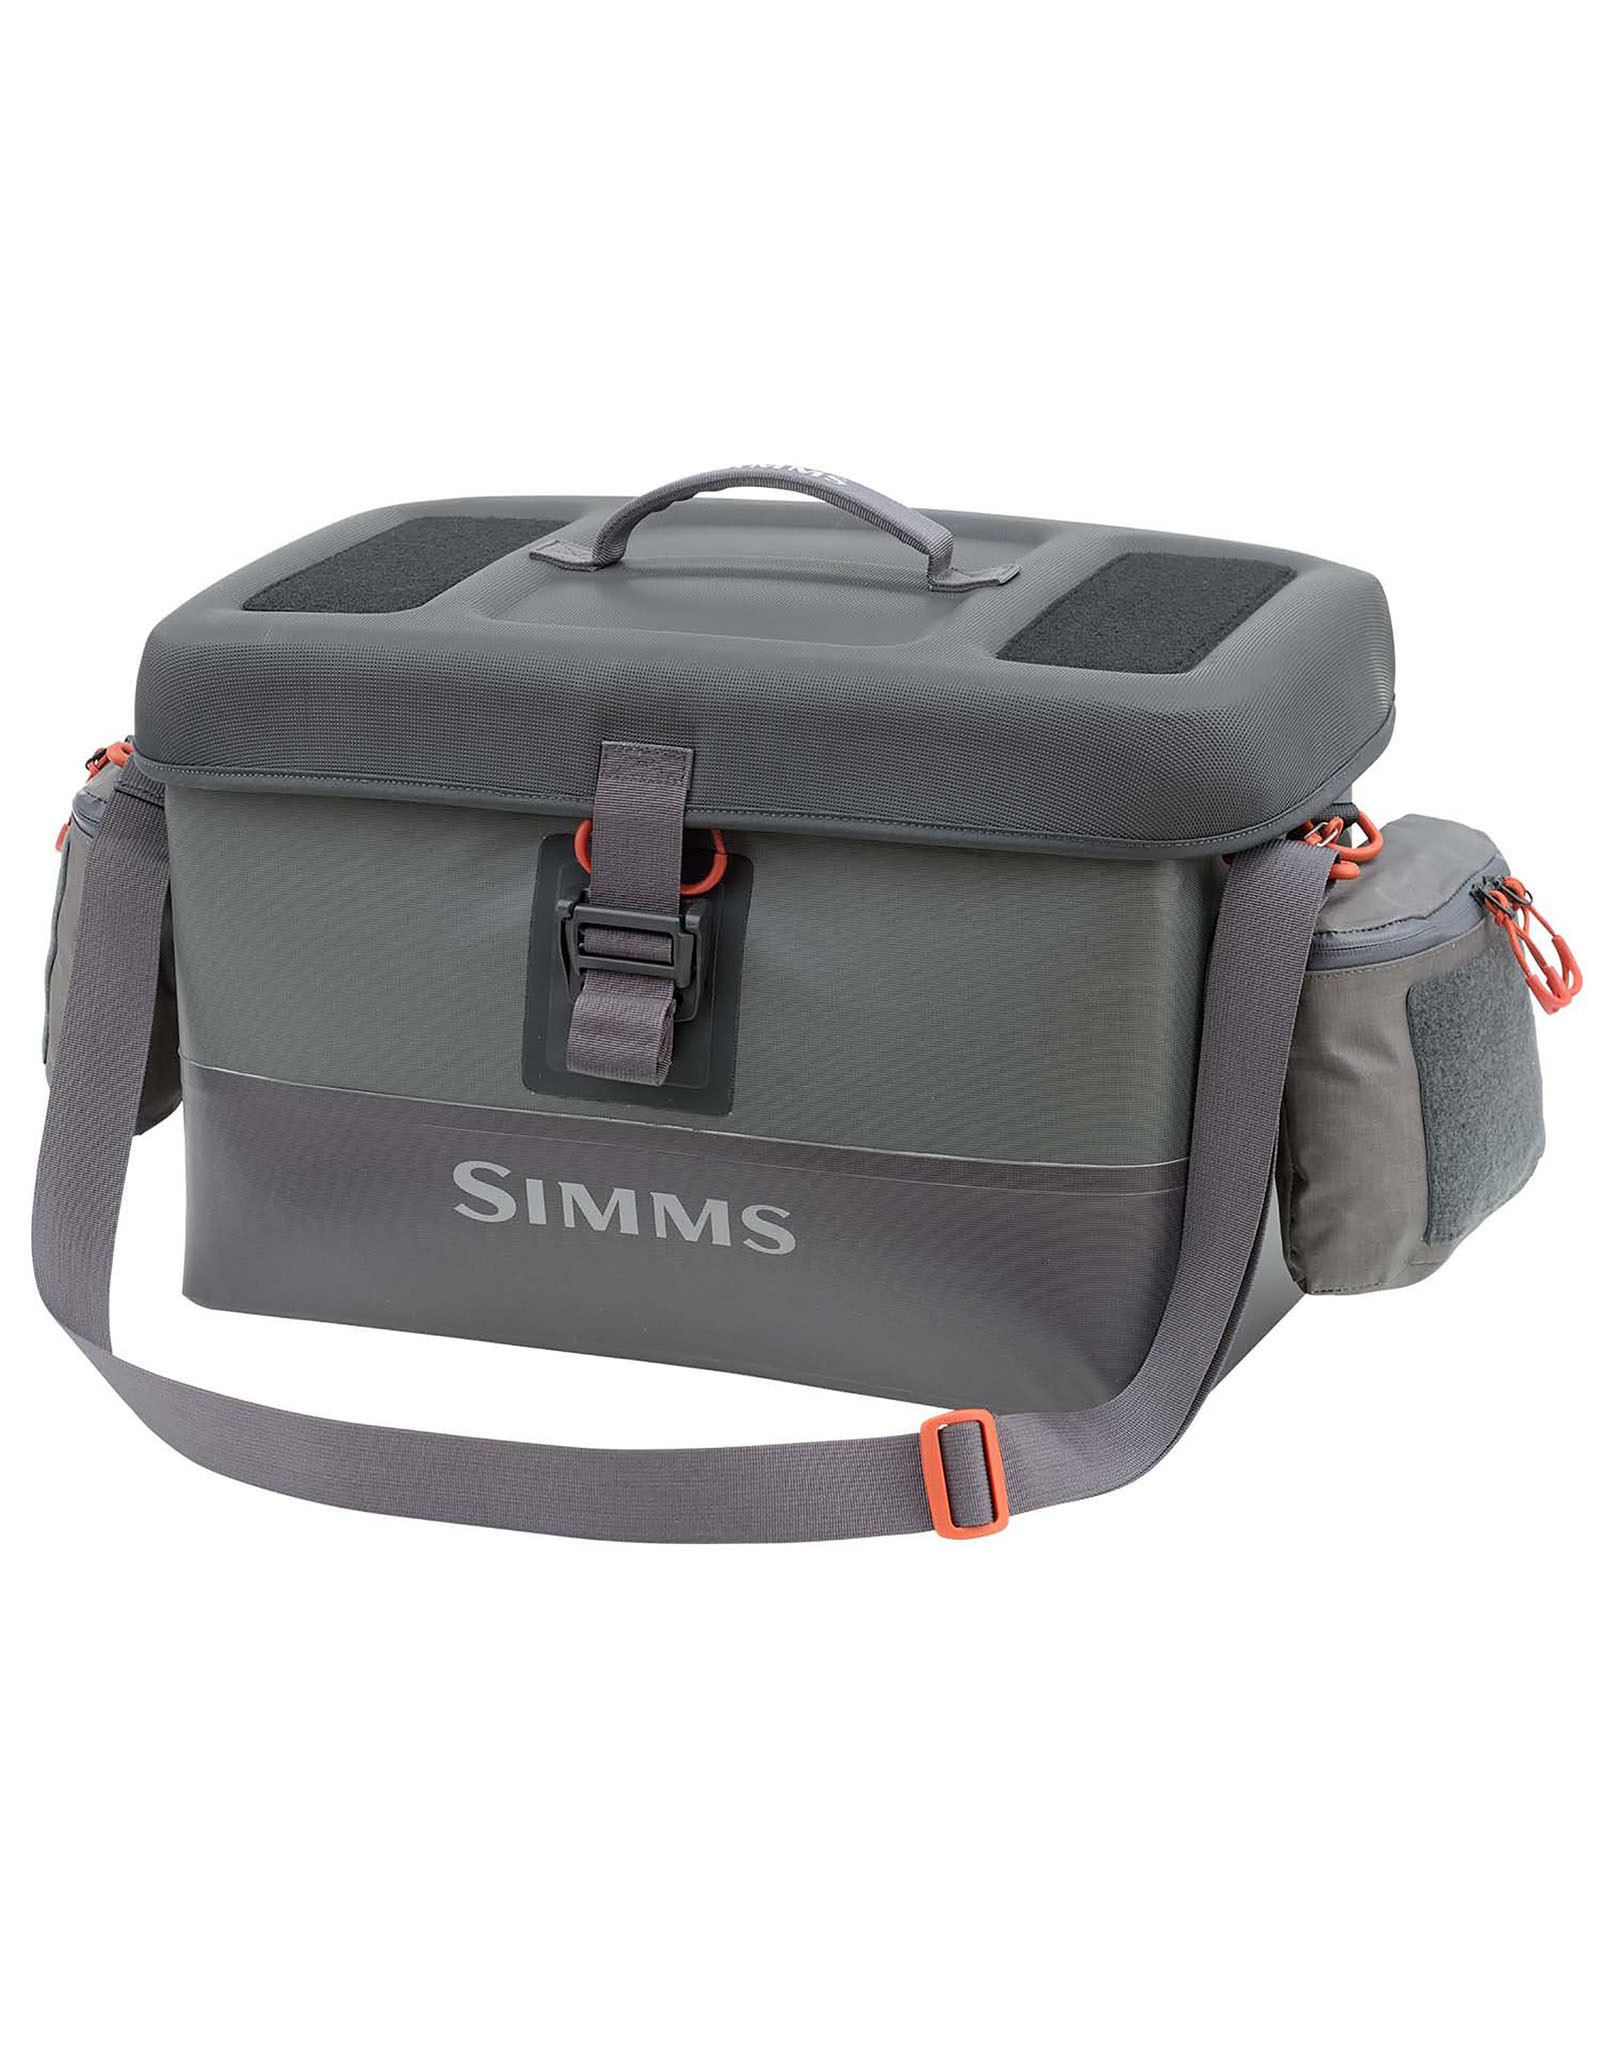 Simms Simms - Dry Creek Boat Bag, Medium - Anvil